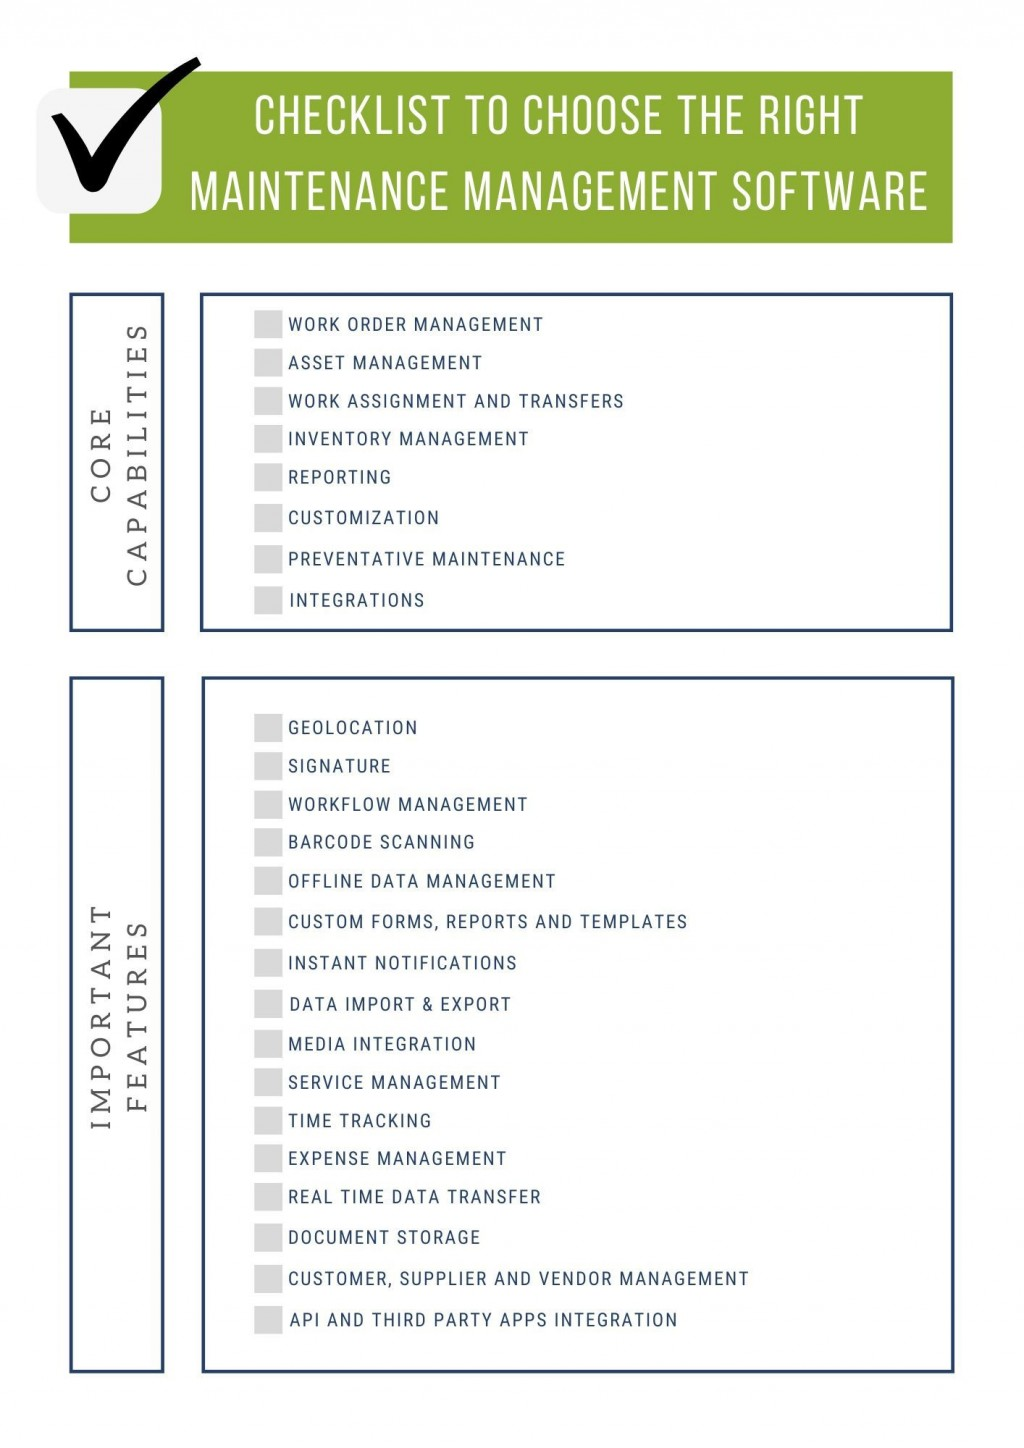 005 Unusual Property Management Maintenance Checklist Template Example  FreeLarge